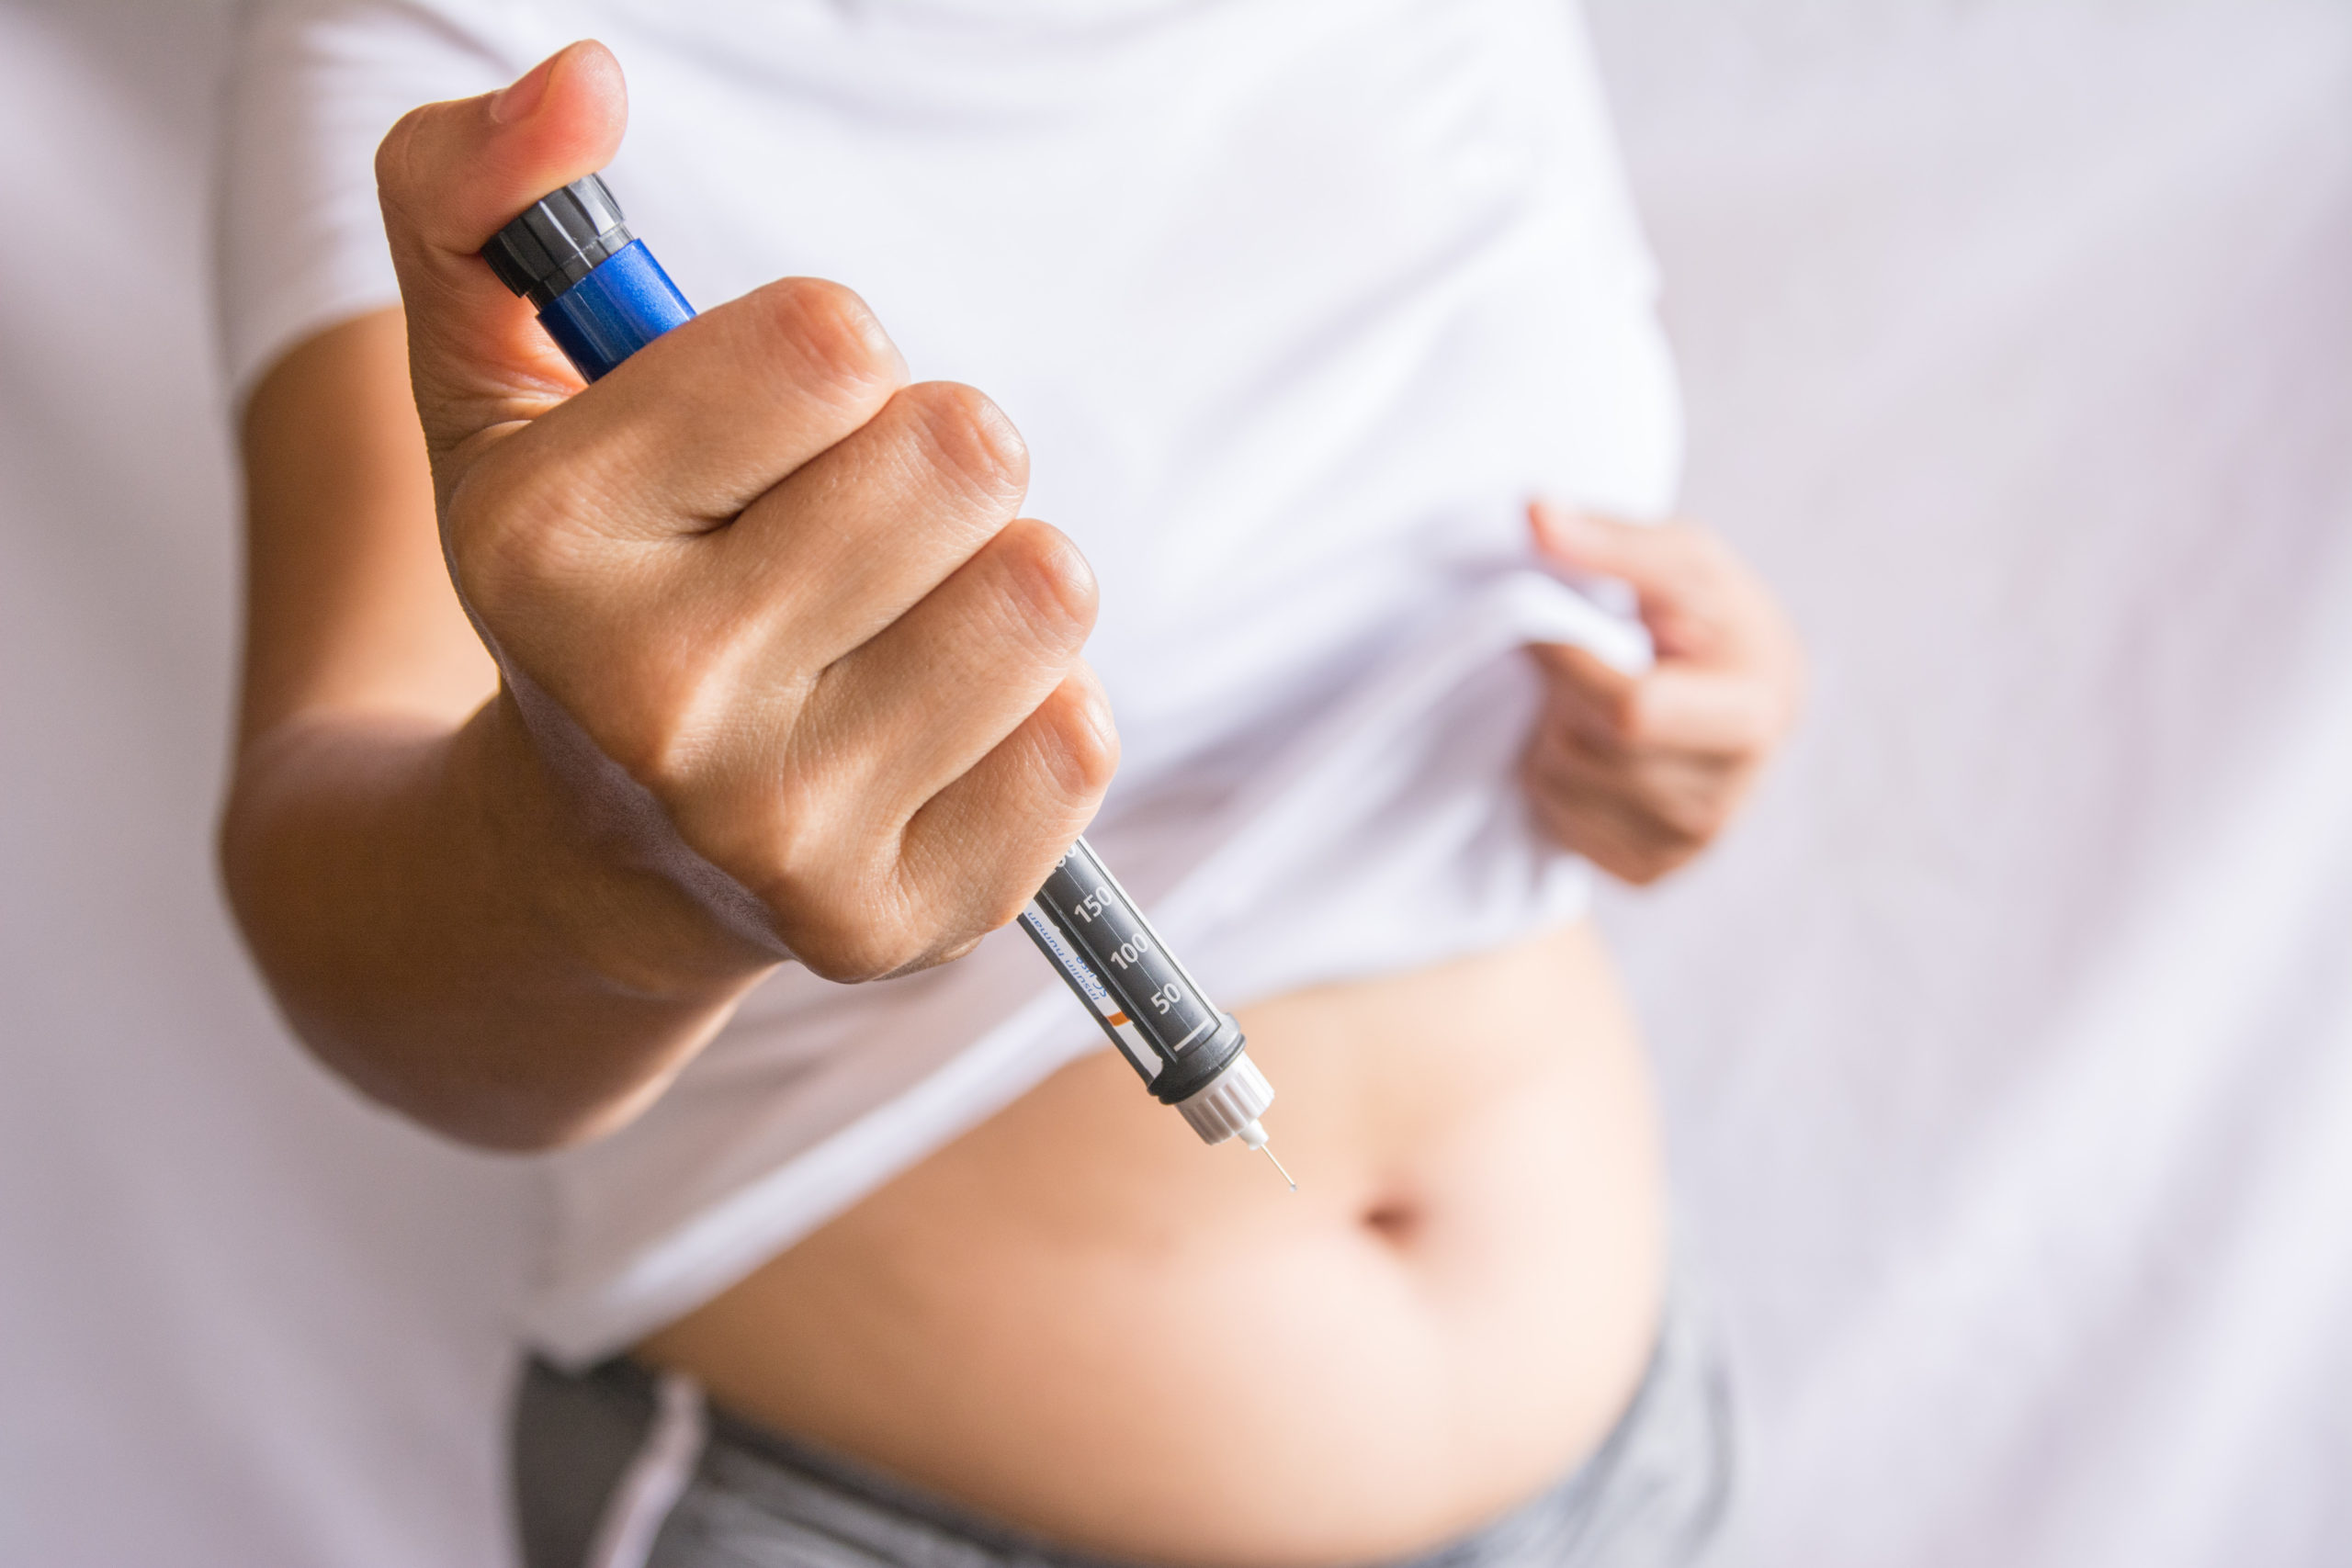 A person holding up an EpiPen, getting ready to inject into their stomach